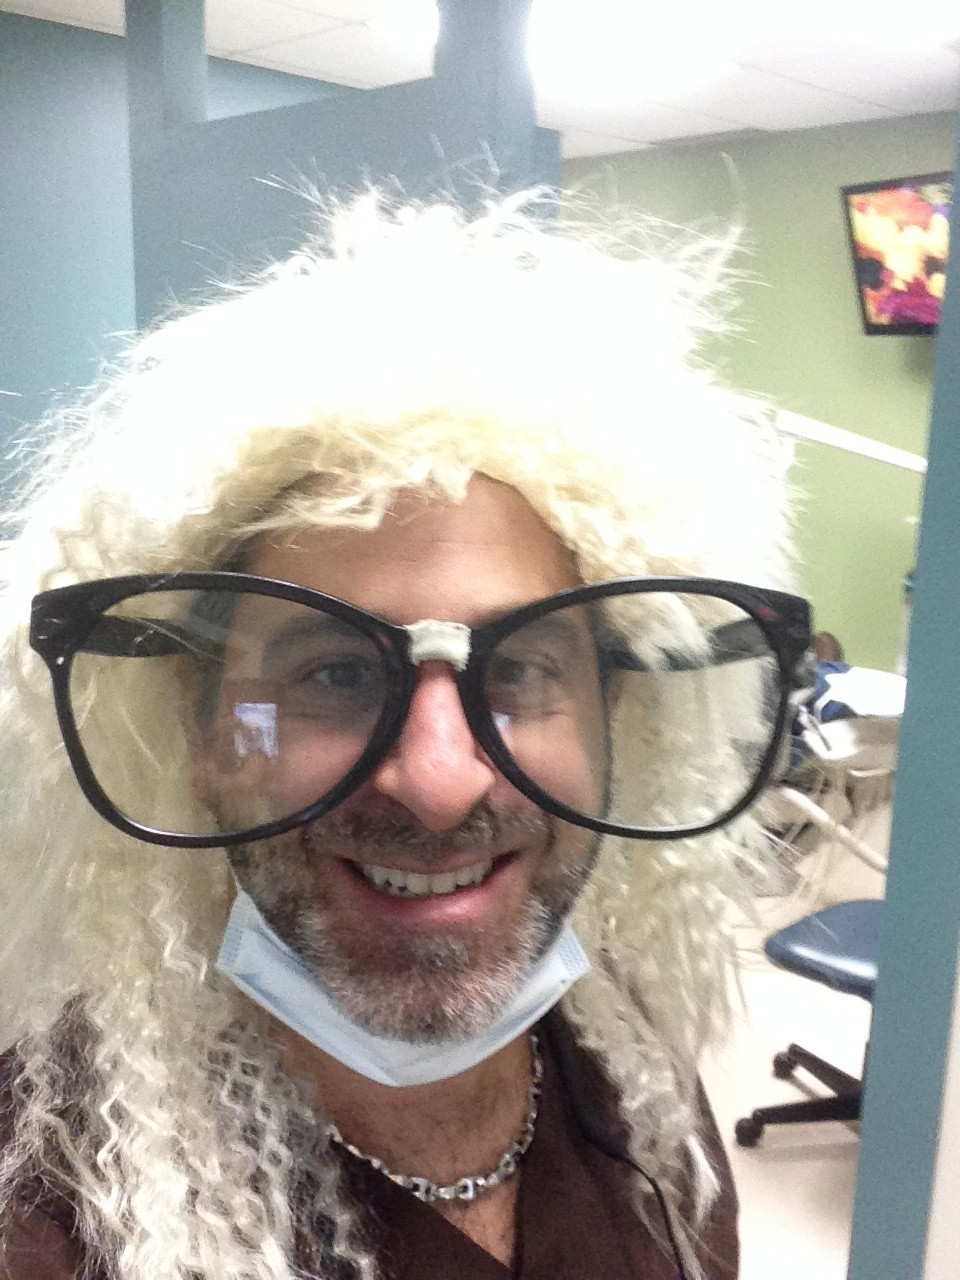 Dr. Zaichick wants to wear this Halloween look all year